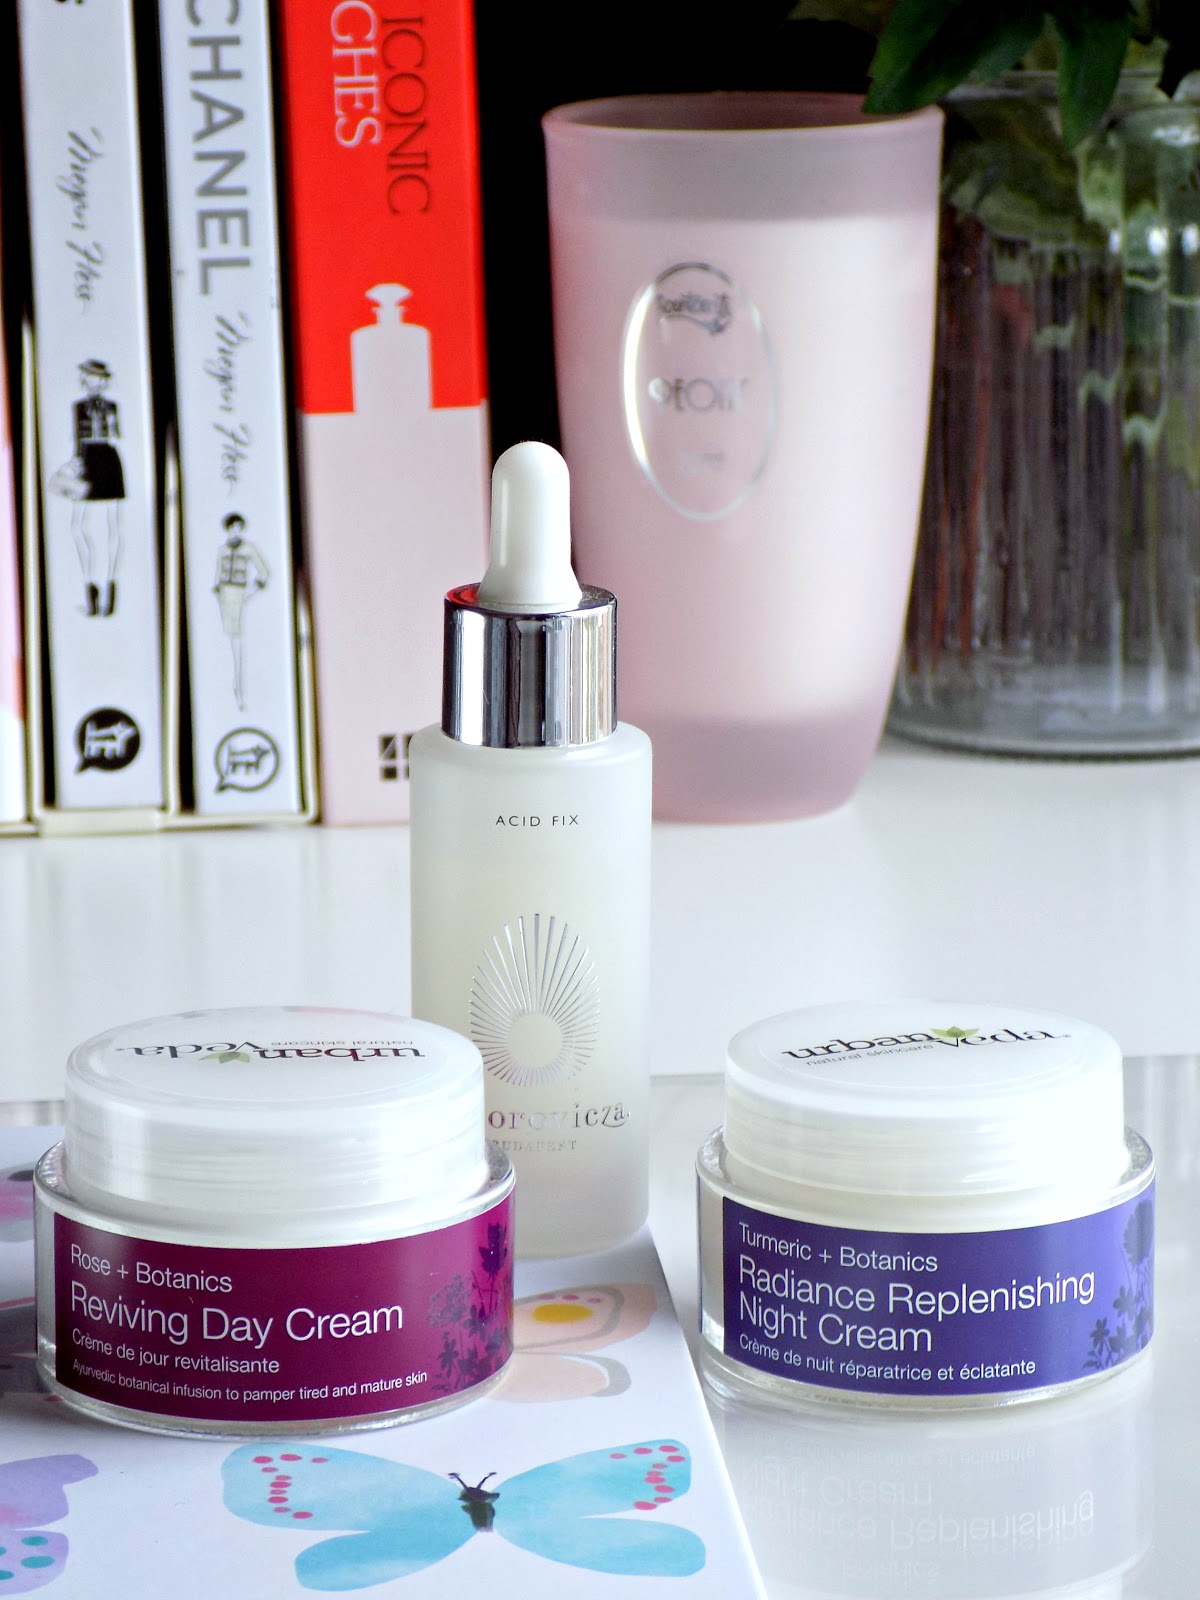 Omorovicza Acid Fix and Urban Veda moisturisers